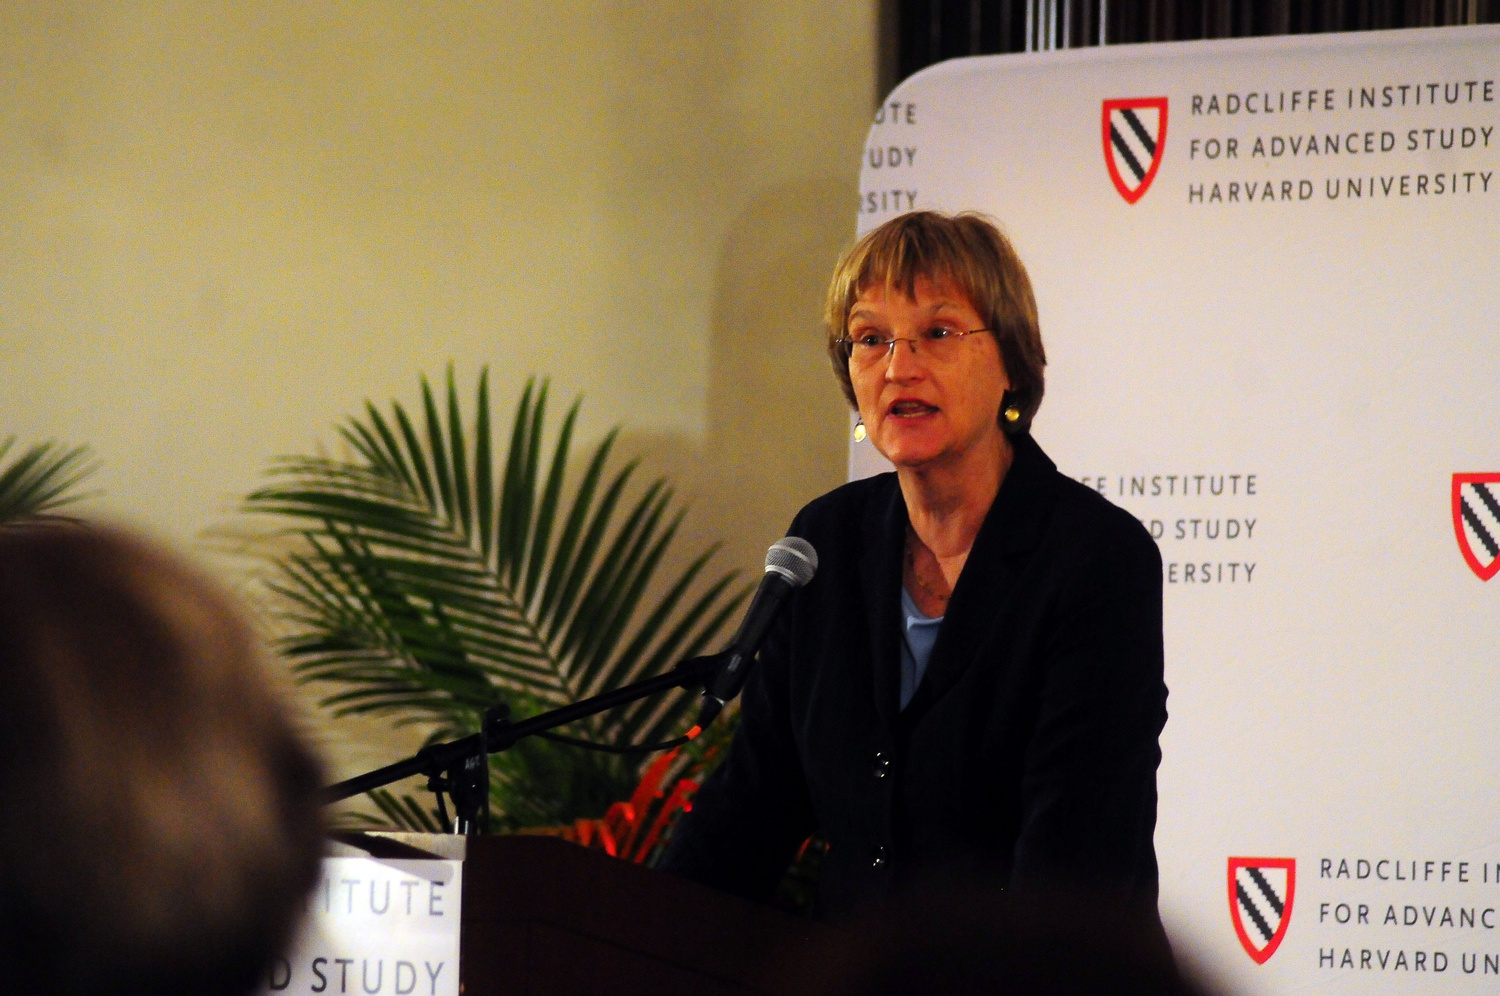 University President Drew G. Faust speaks at the launch of the Radcliffe Campaign on Monday.